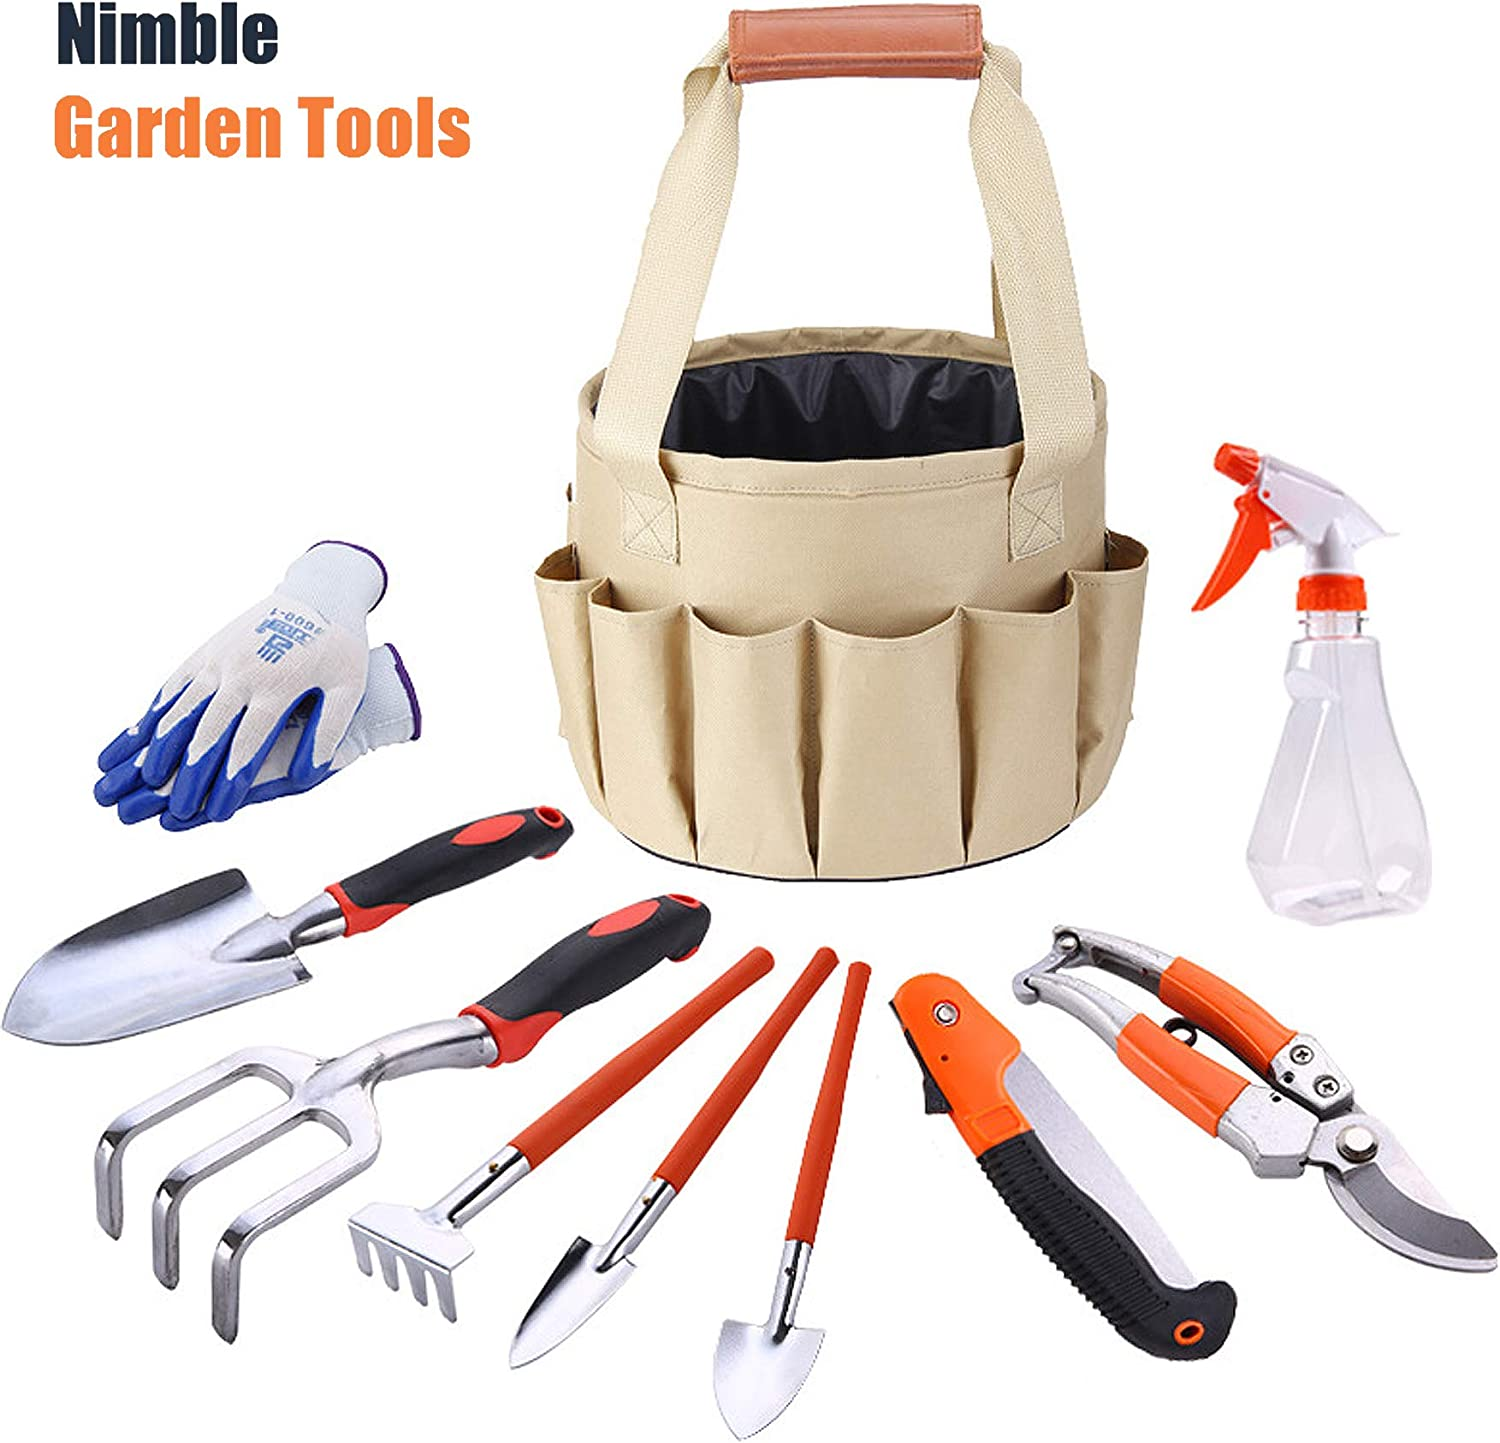 Garden Tools Set - Collapsible Gardening Bag,10 Piece Heavy Duty Gardening Kit,Gardening Tools with Garden Gloves,Garden Tote,Garden Trowel Pruners and More, Gardening Gifts Tool Set for Family